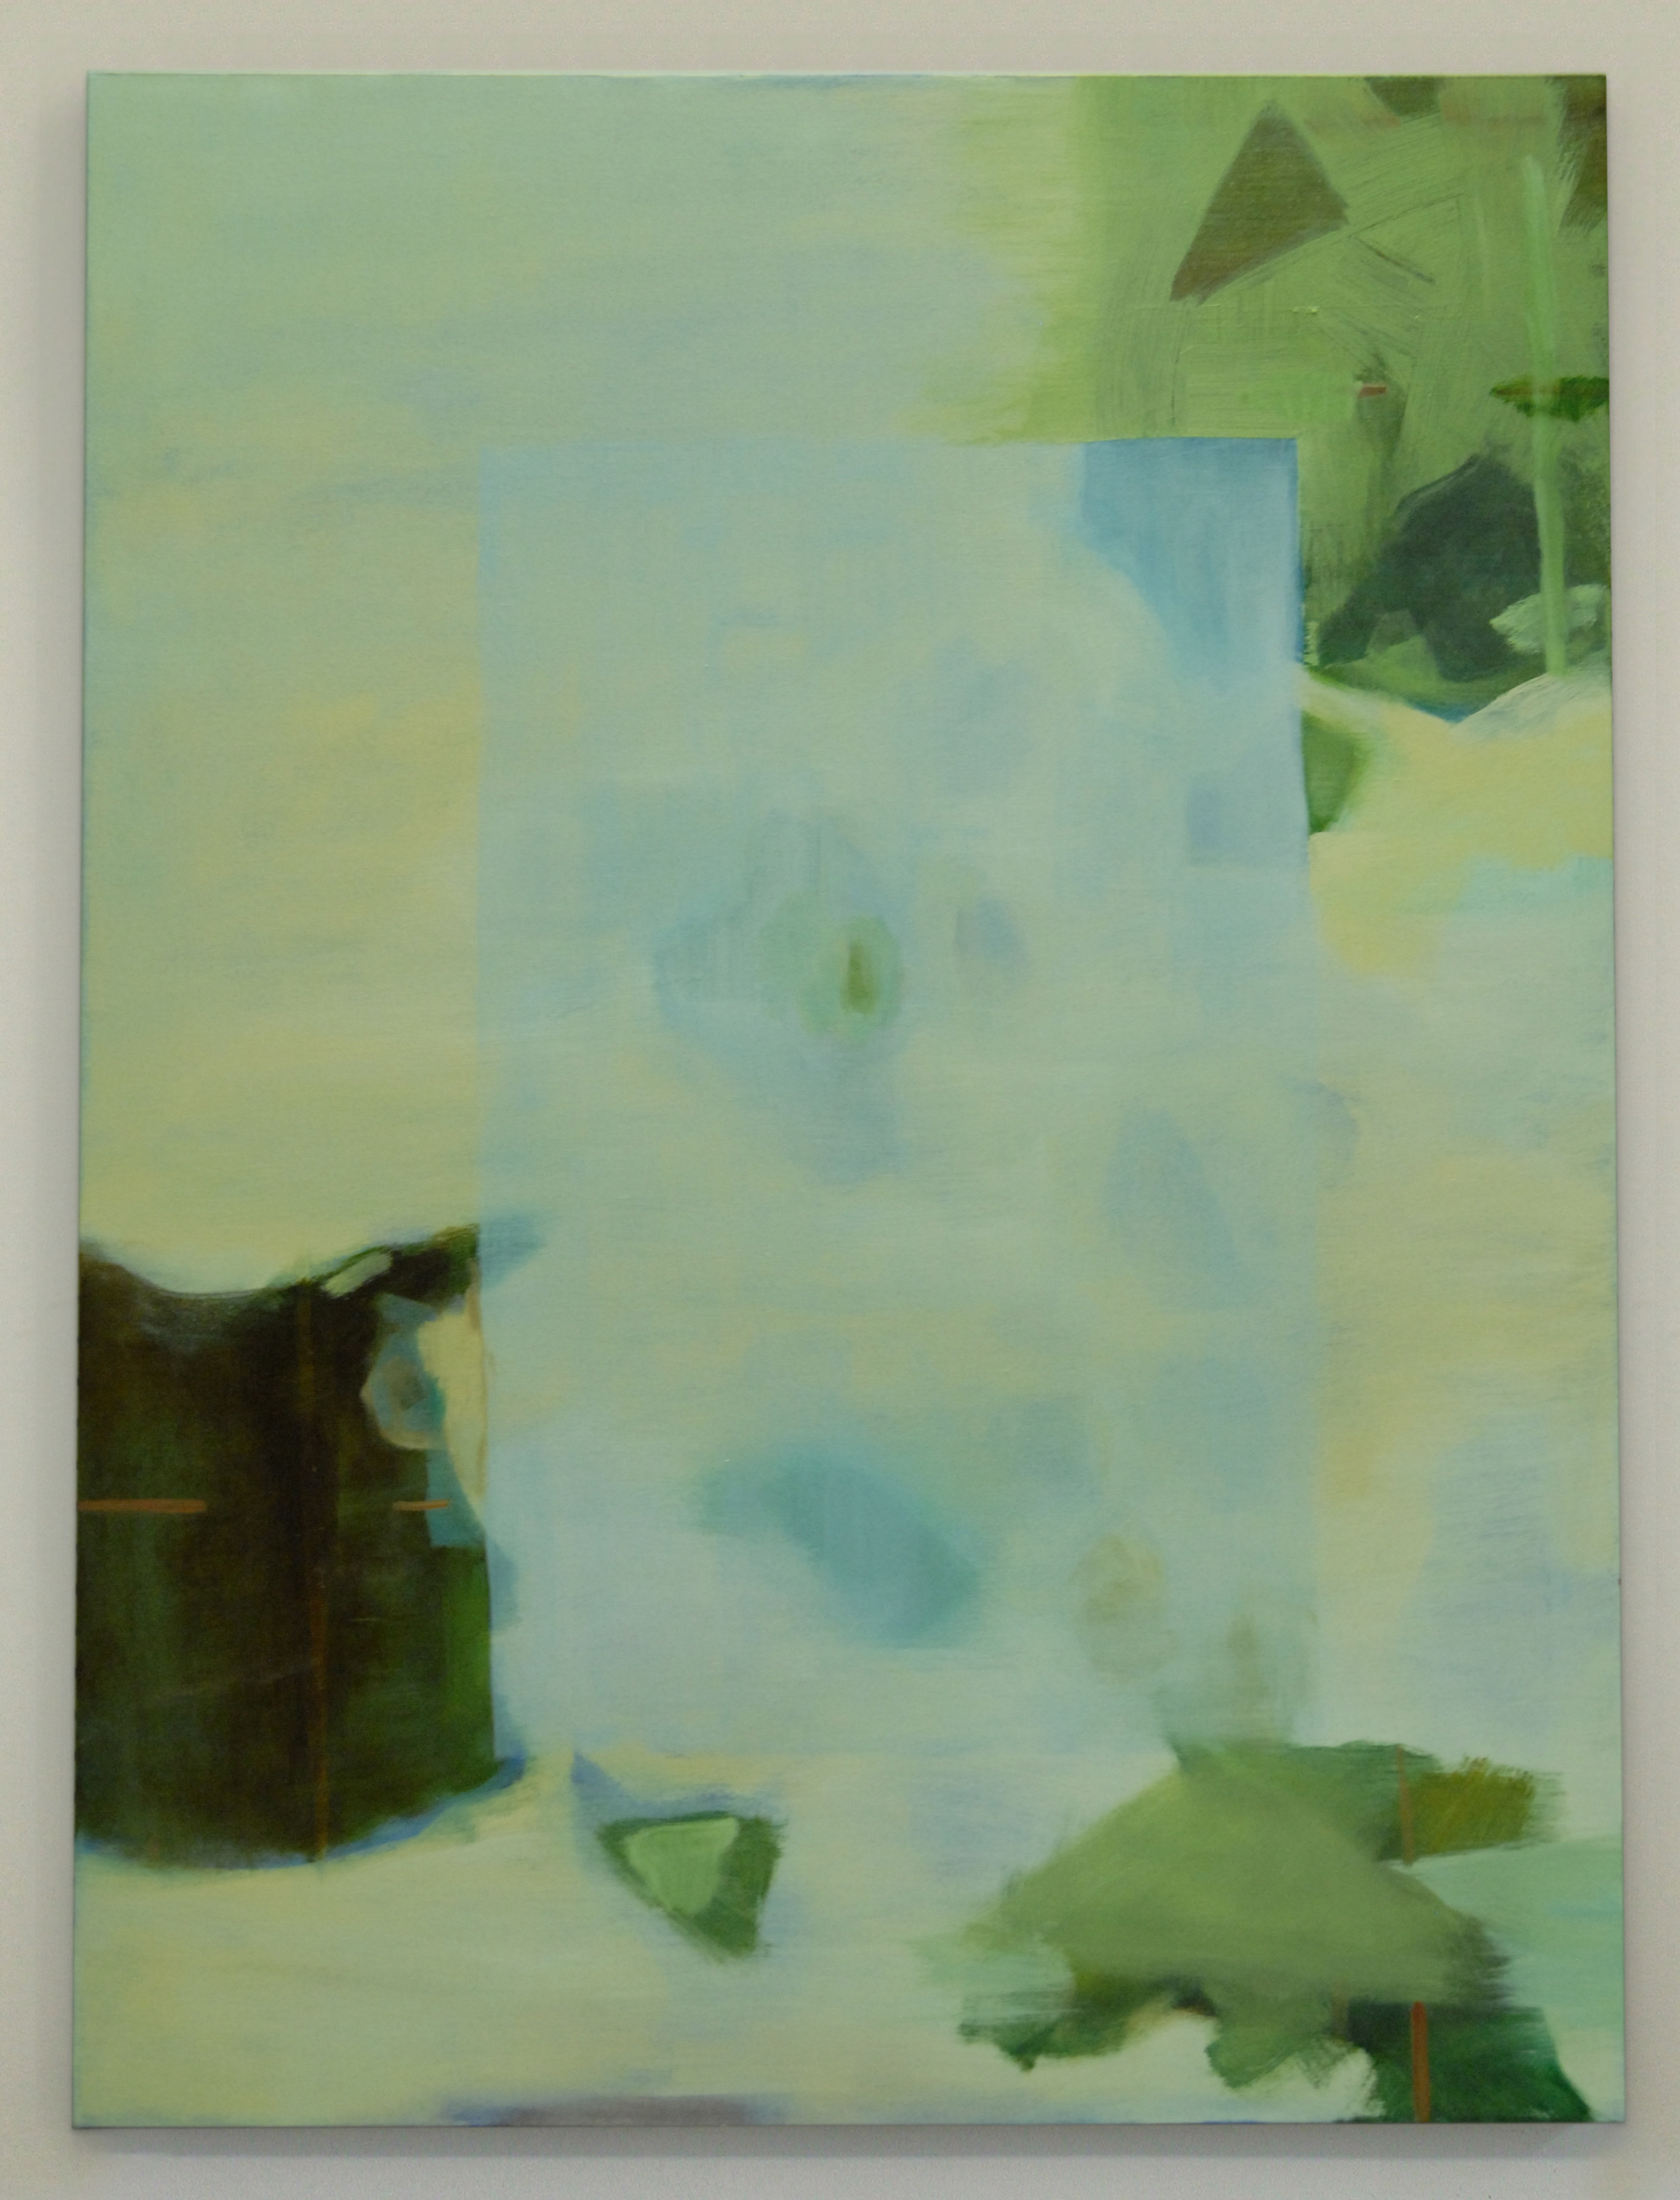 Archipelago, 2012, oil on canvas, 48 x 36 inches